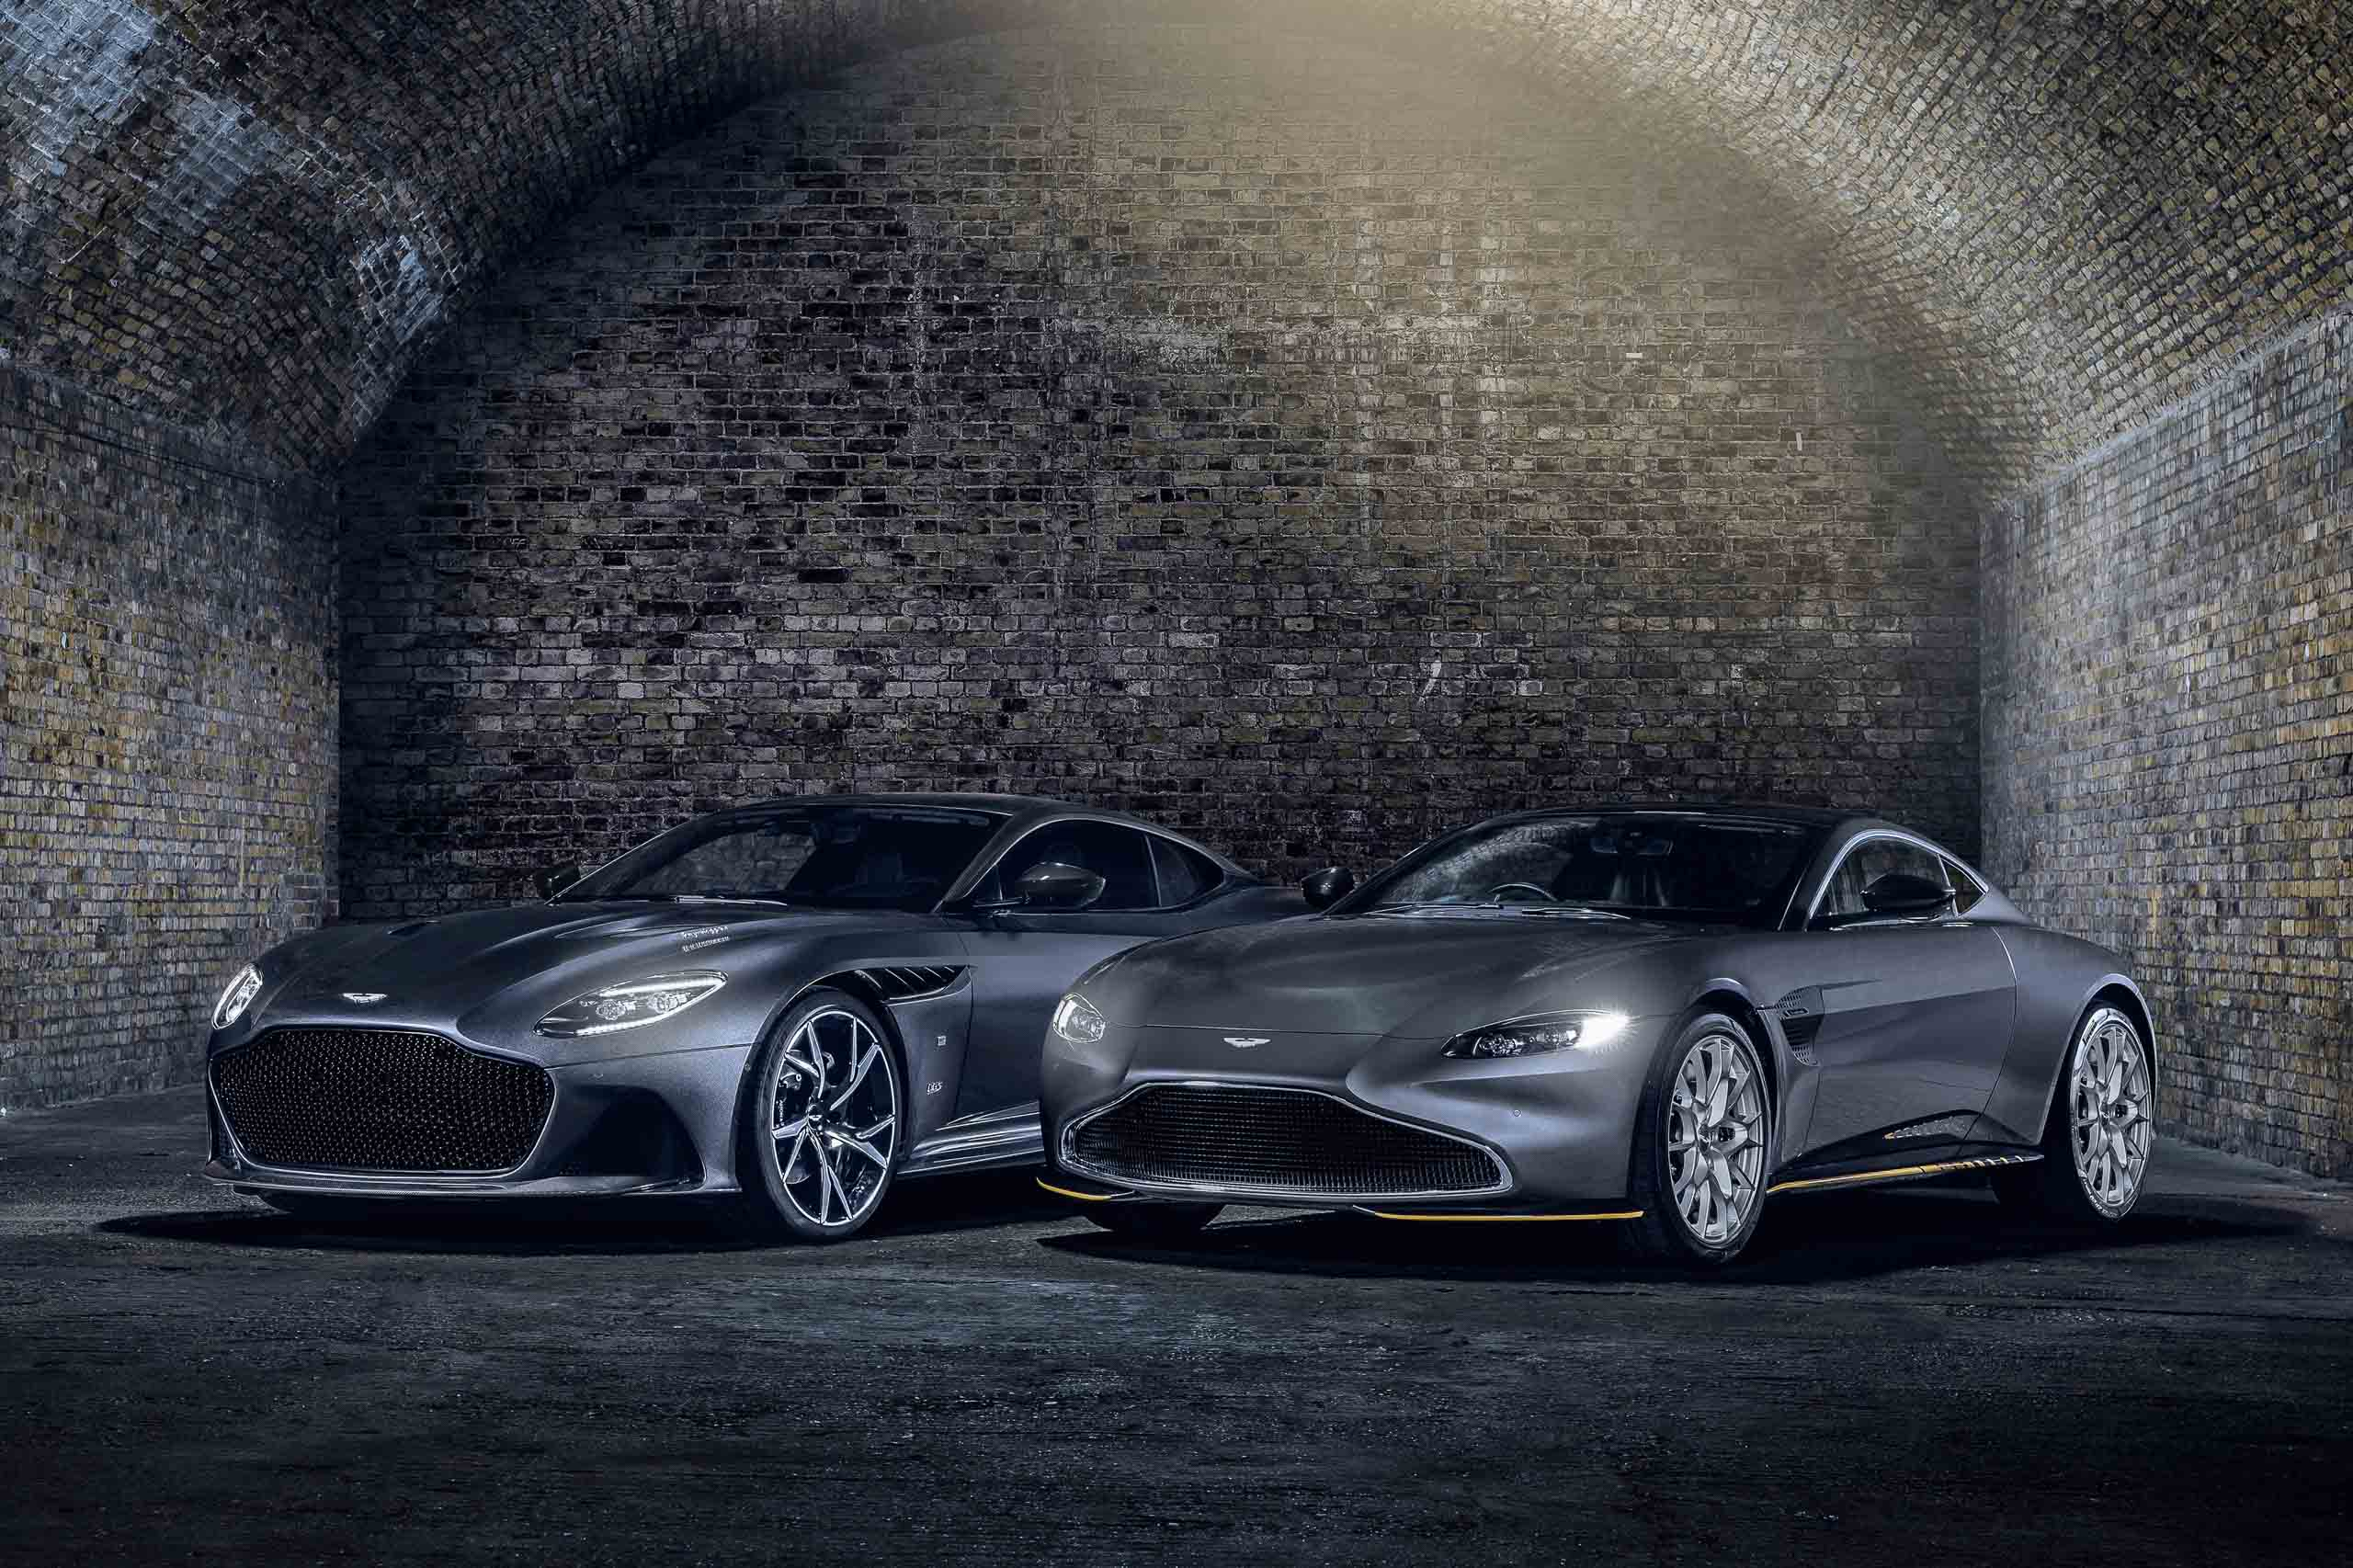 2020 Aston Martin DBS Superleggera 007 Edition | Fanaticar Magazin